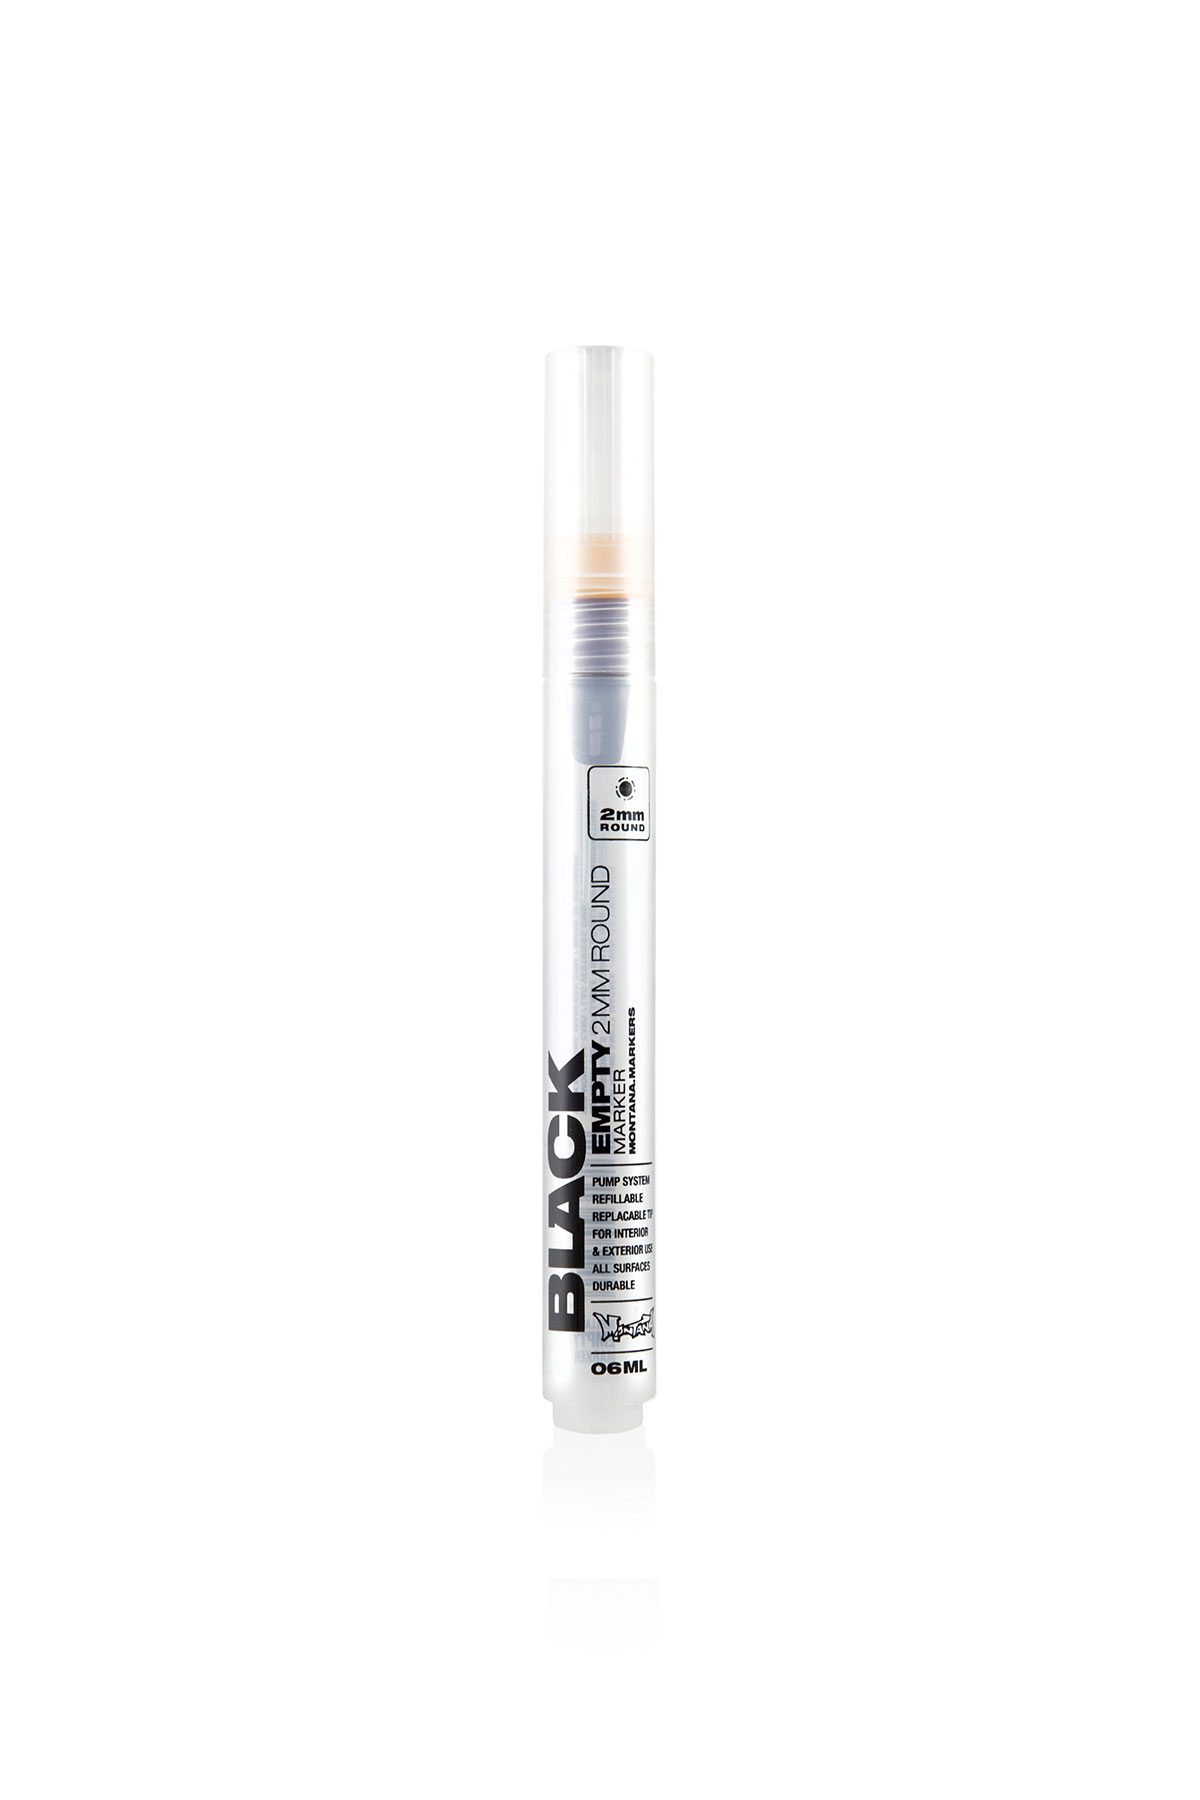 Montana BLACK EMPTY Marker 2mm/06ml